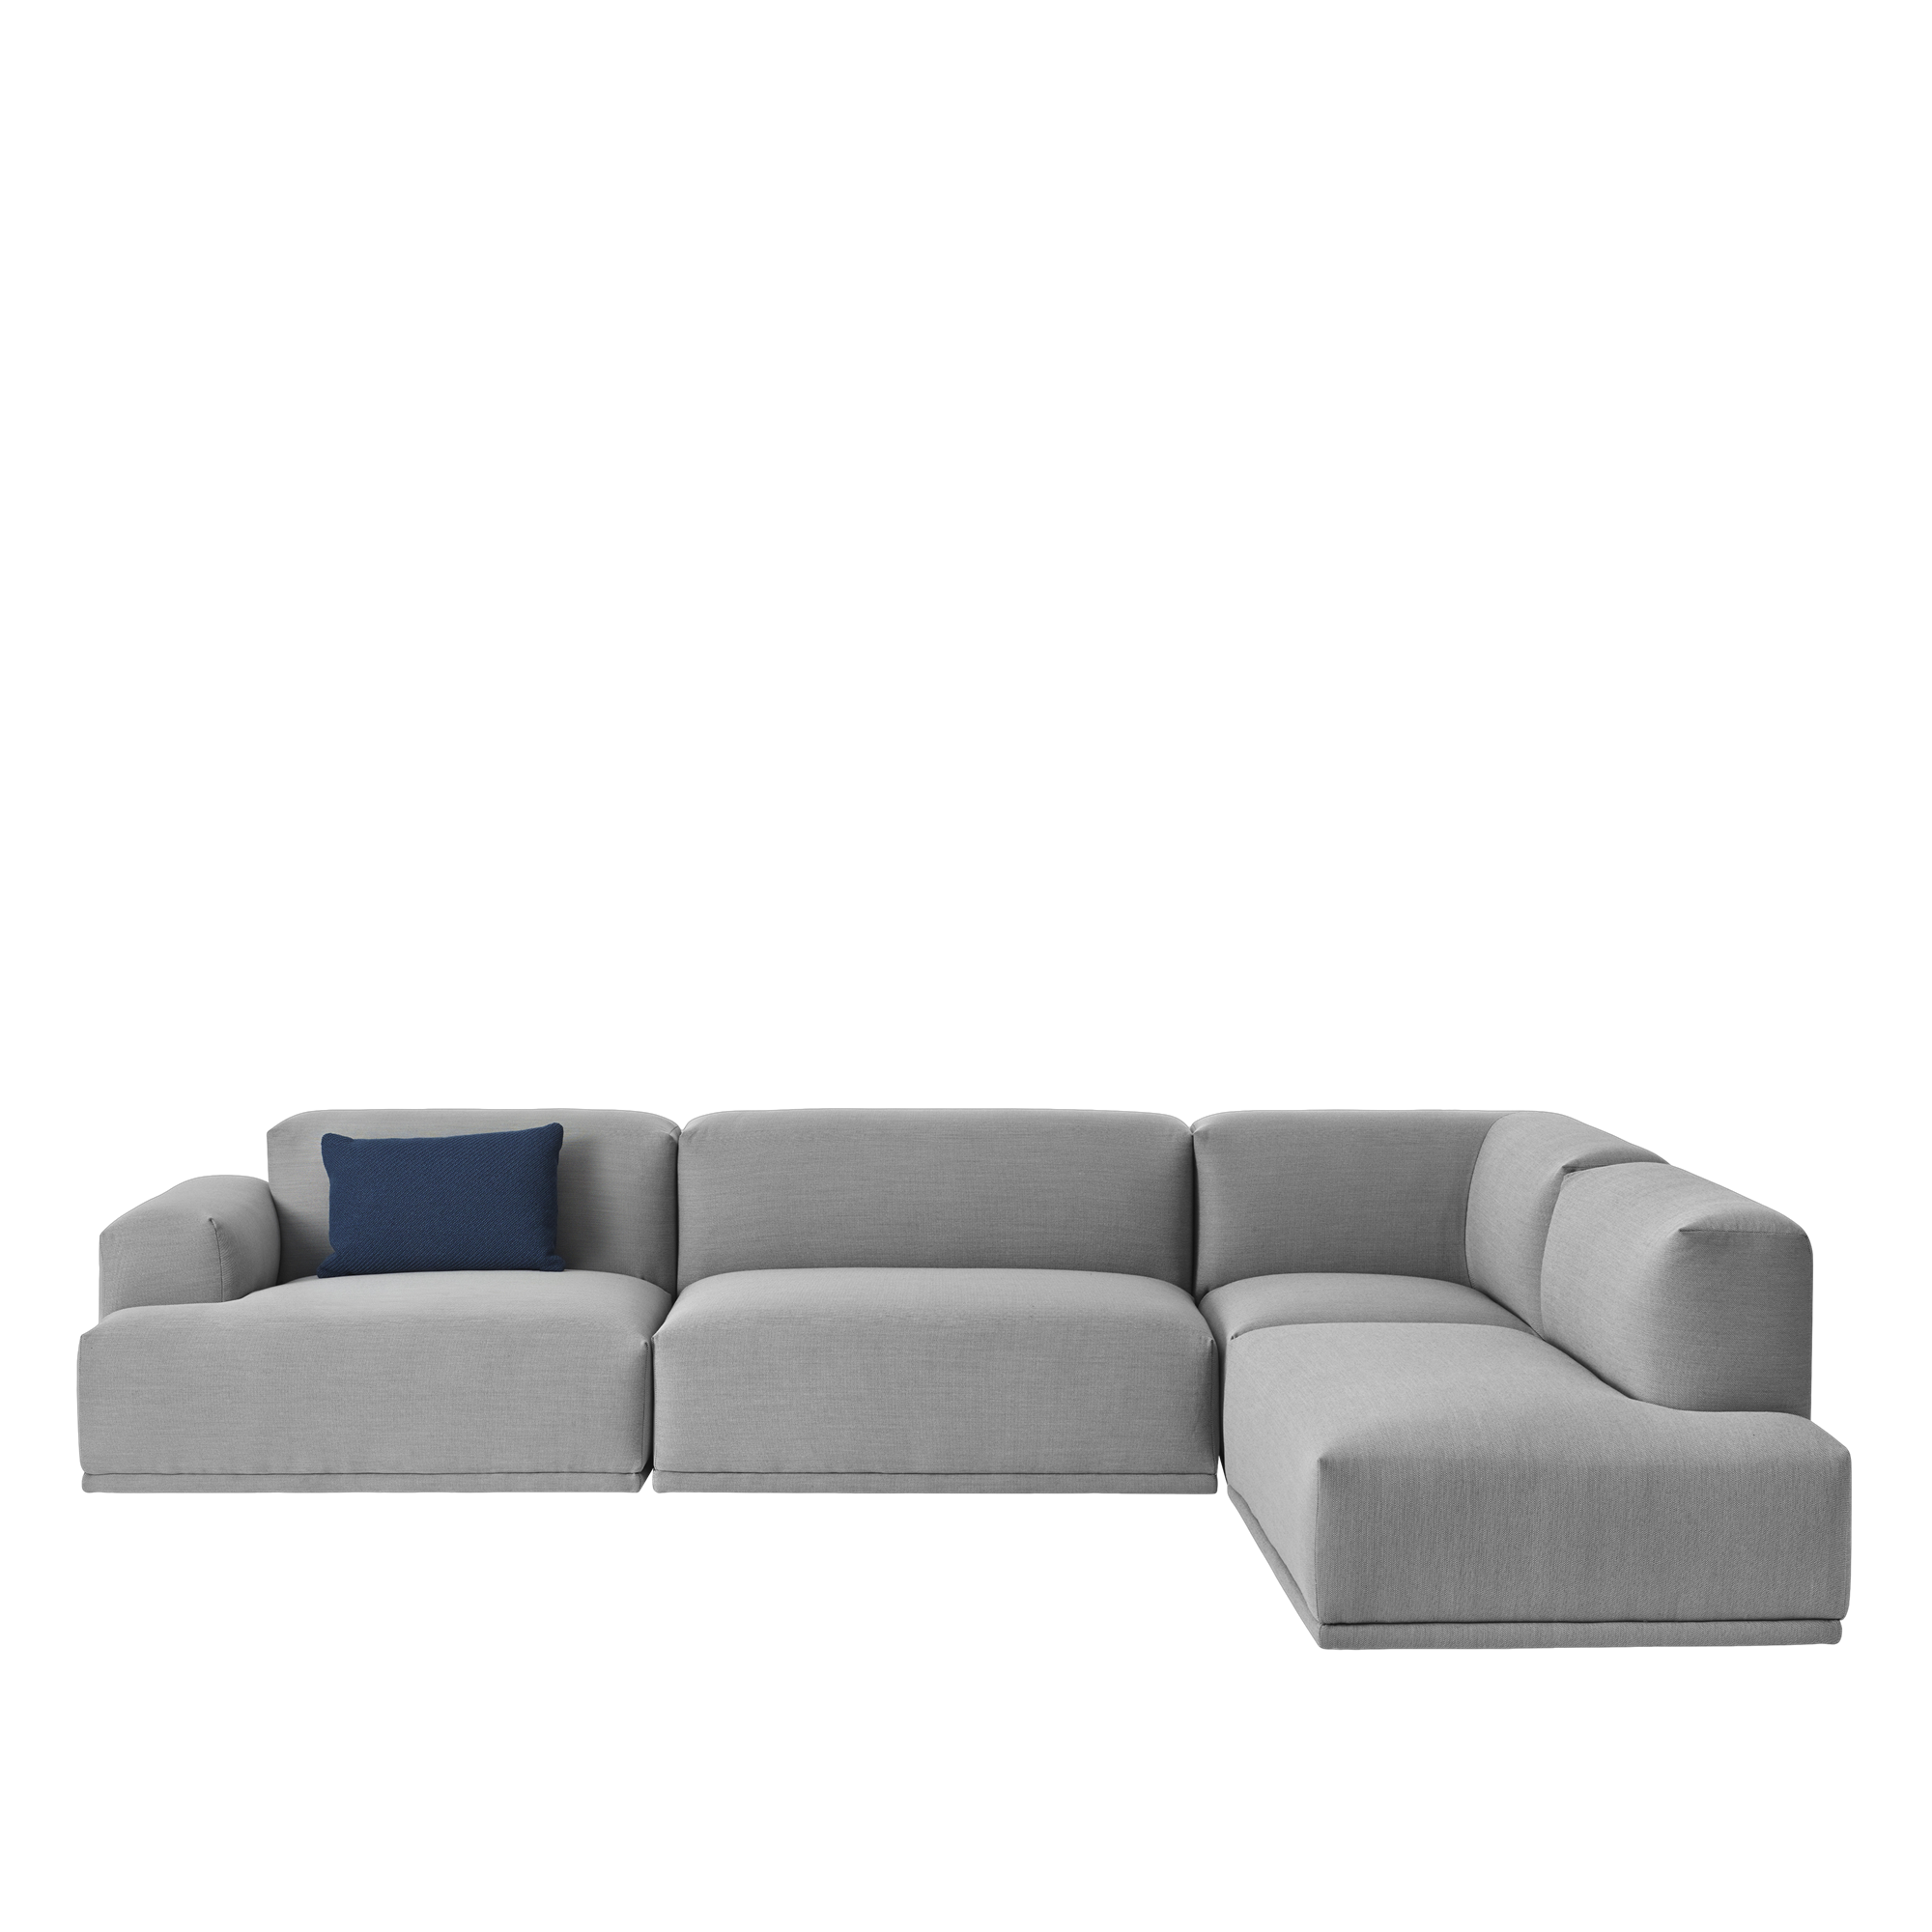 Full Size of Furniture Sofa Sale Outline Connect Uk Dimensions Pris Rest Workshop Sofabord Leather Table 2 Seater Dba Modular System Customise The For Your Space Sofa Muuto Sofa